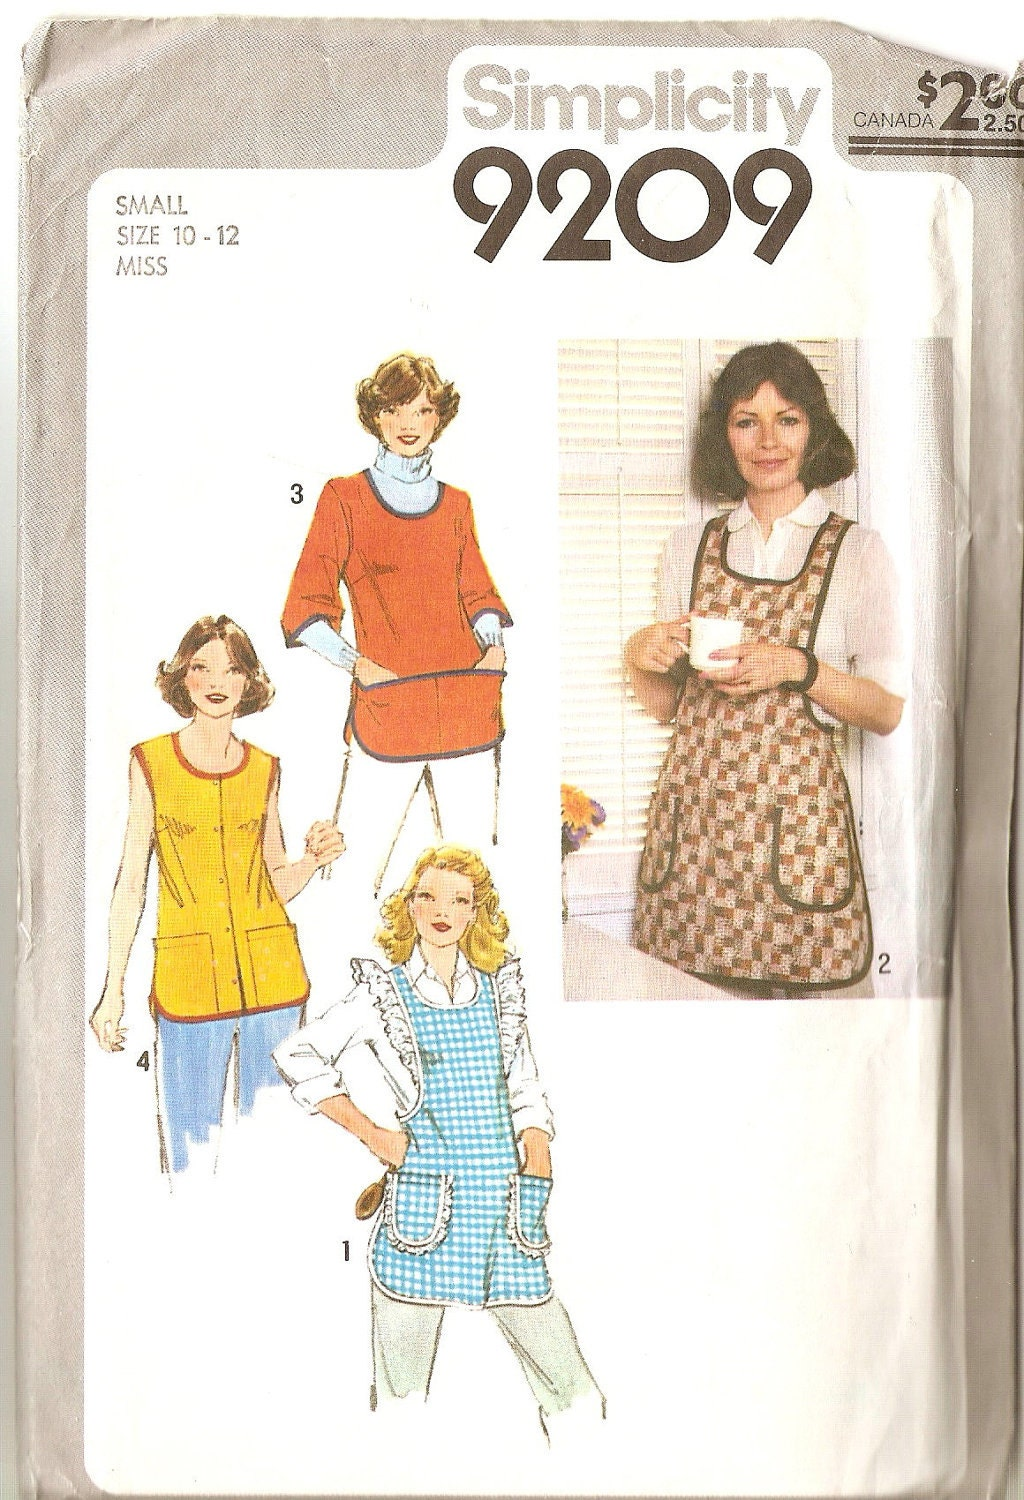 Vintage Apron Sewing Pattern Simplicity 9209 size by ...